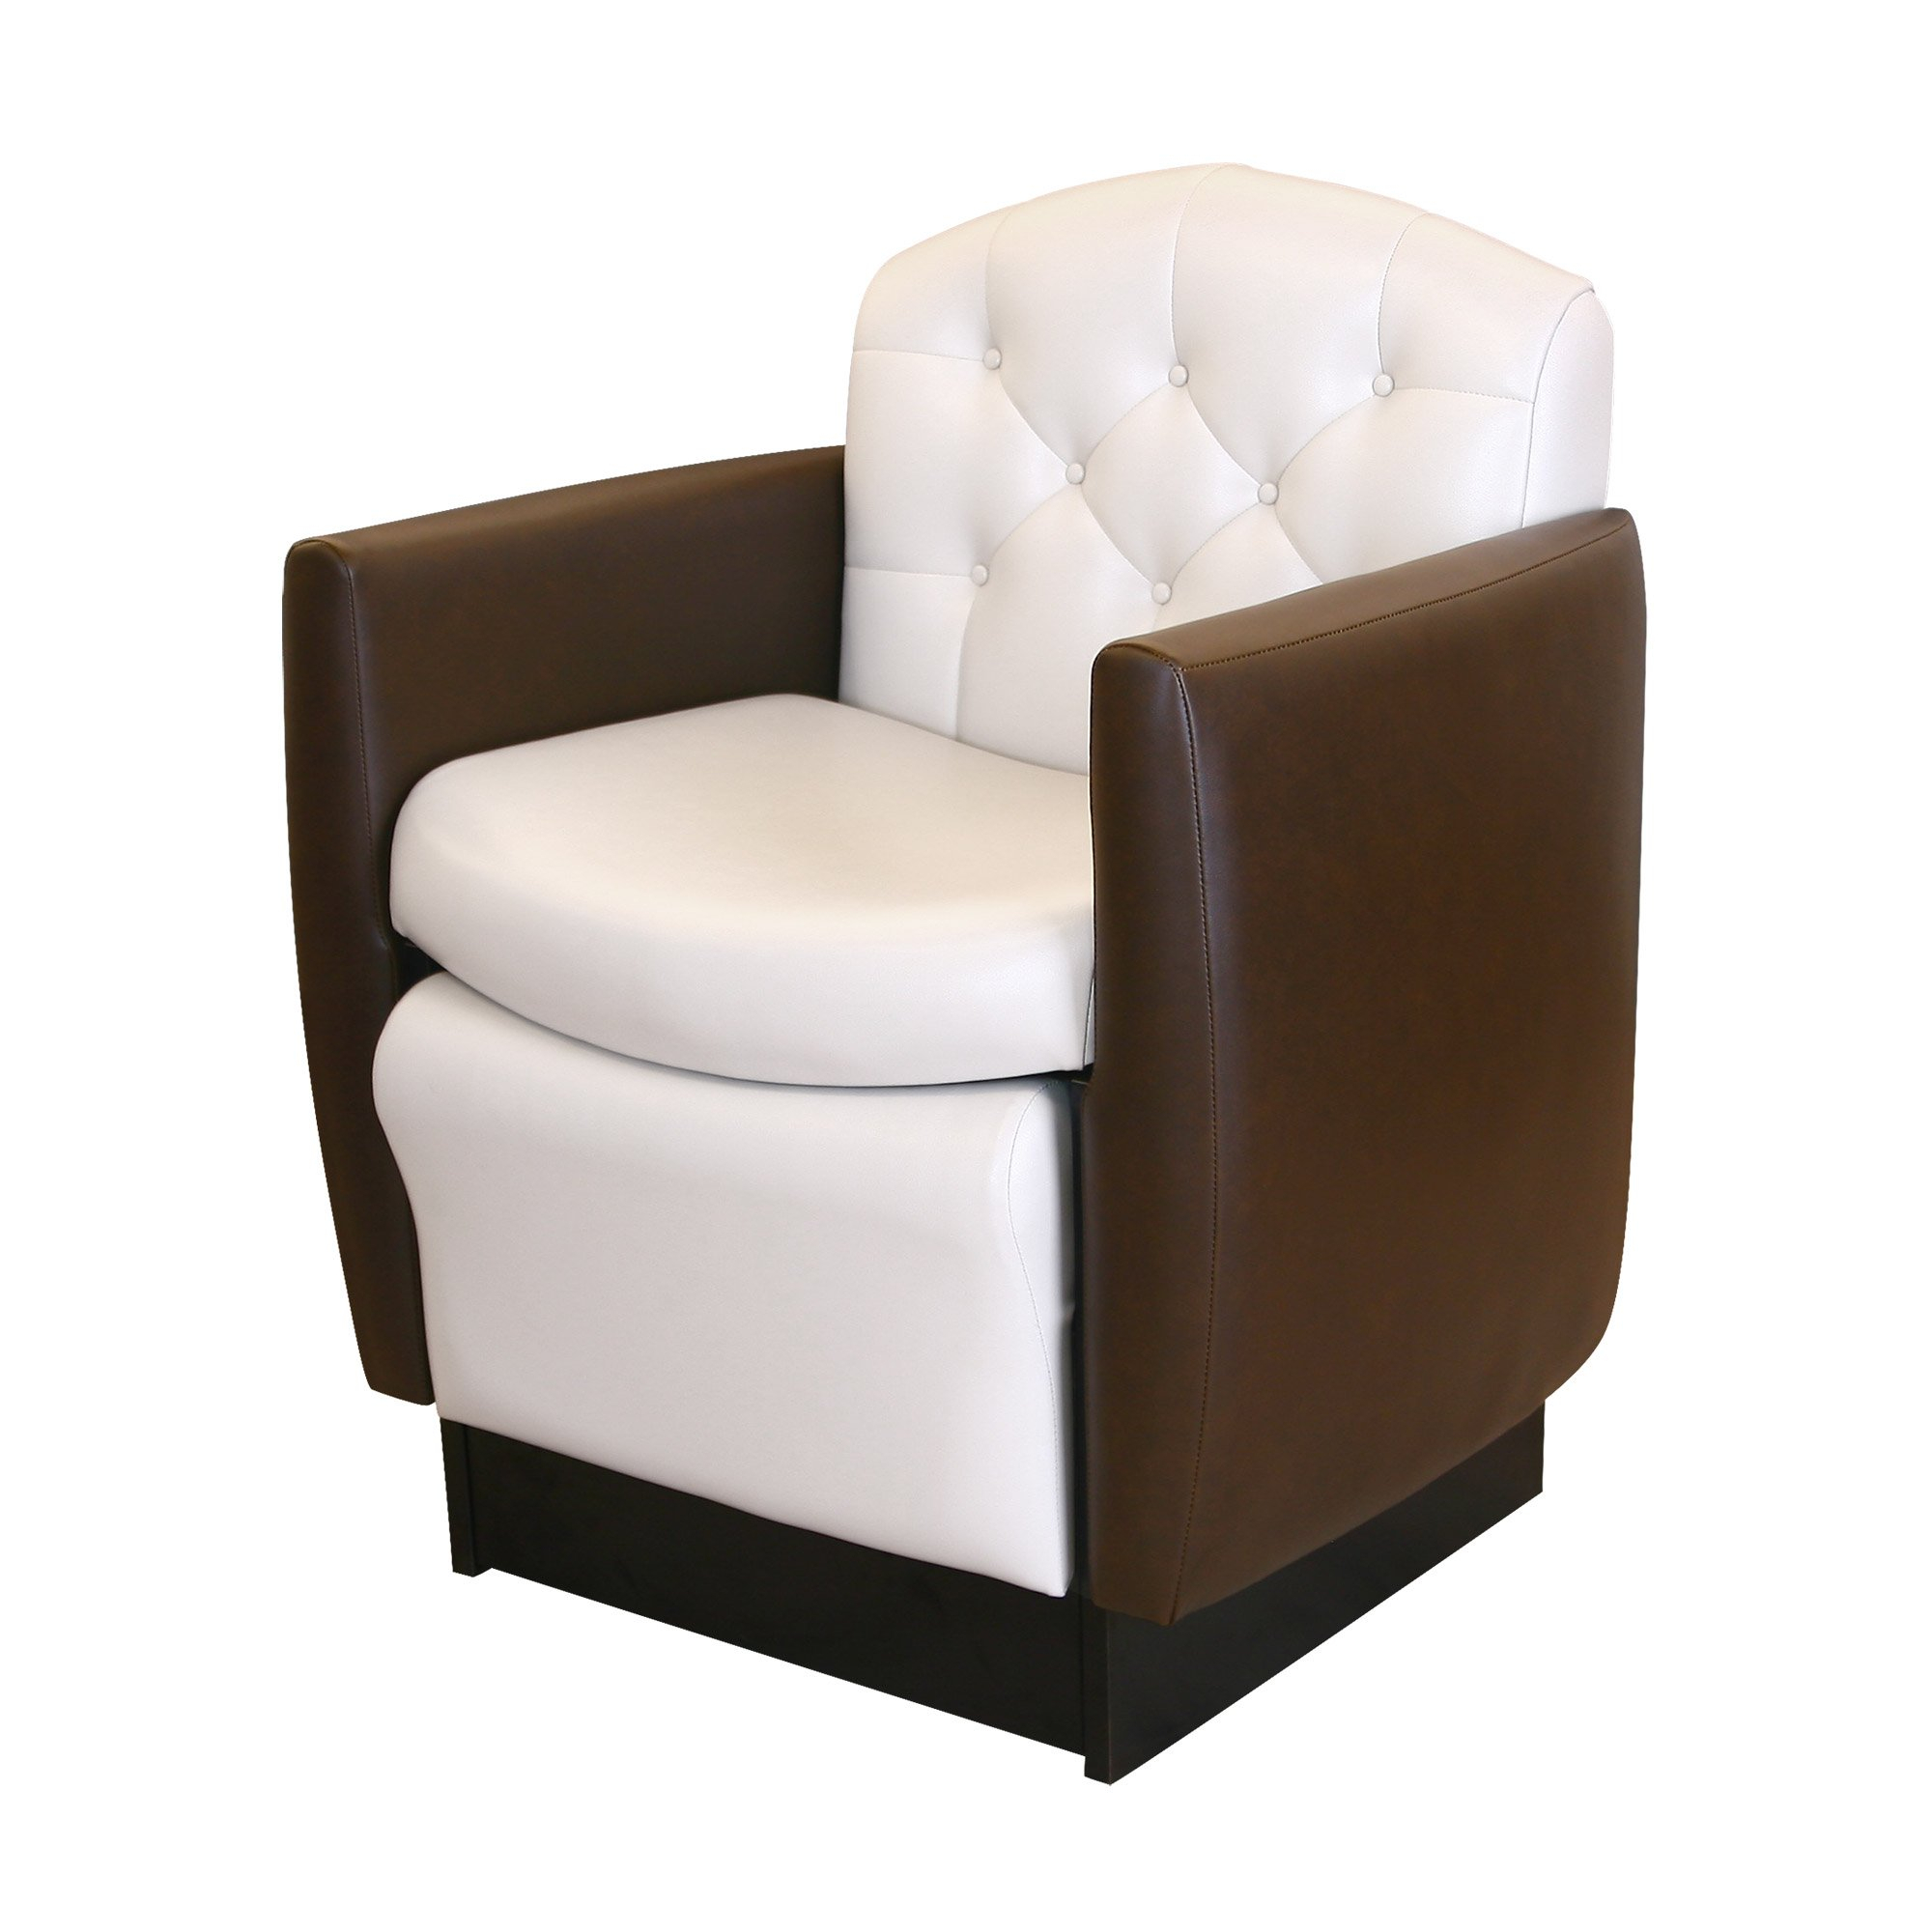 Collins 2565 Ashton Plumb Free Pedicure Chair Col 2565 With Regard To Sofa Pedicure Chairs (View 1 of 15)